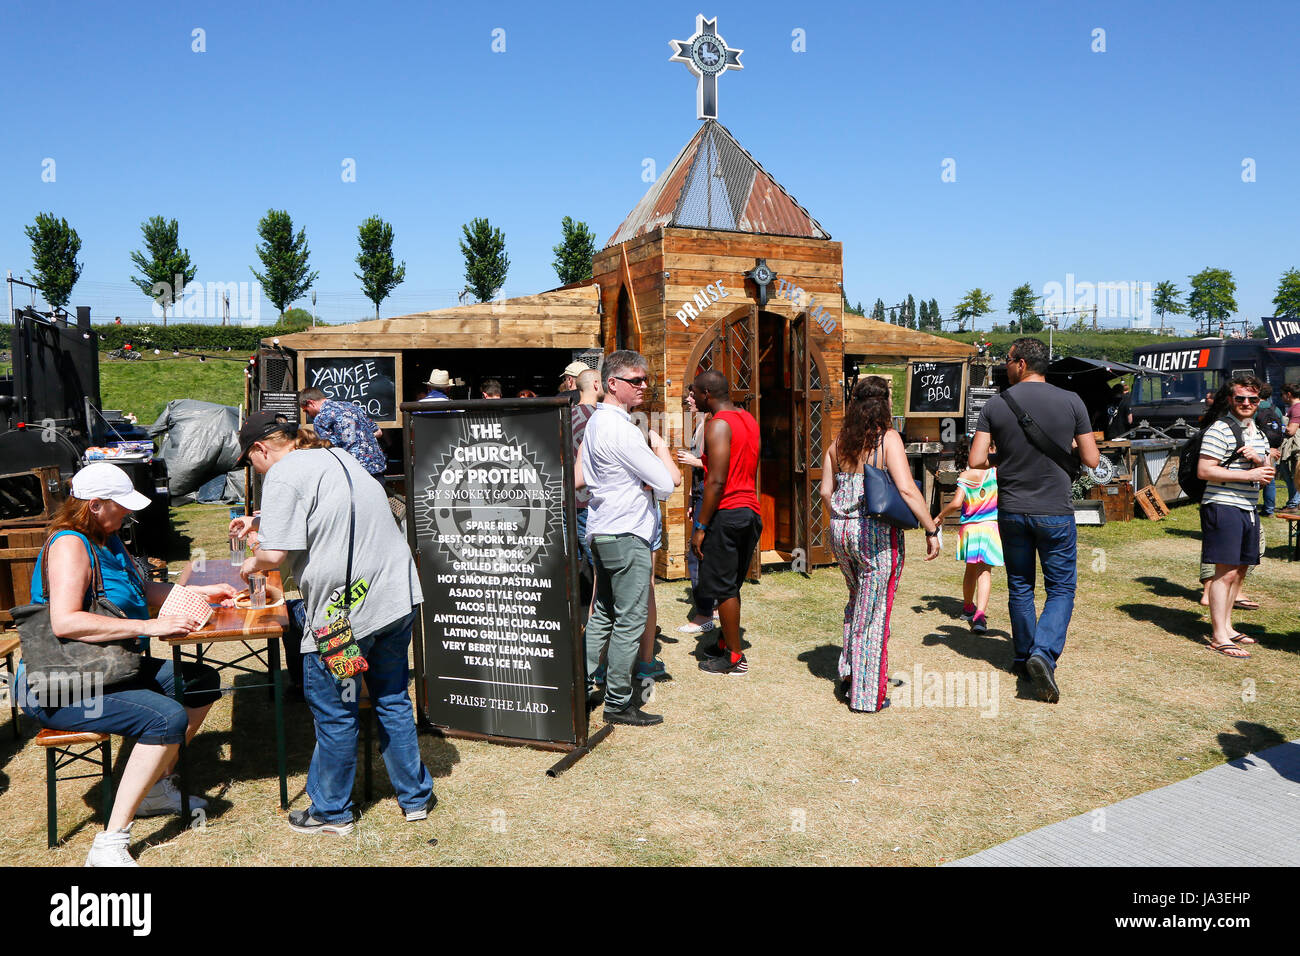 Food Festival The Rolling Kitchens at the Westergasfabriek in the Westerpark in Amsterdam, The Netherlands. Smockey - Stock Image